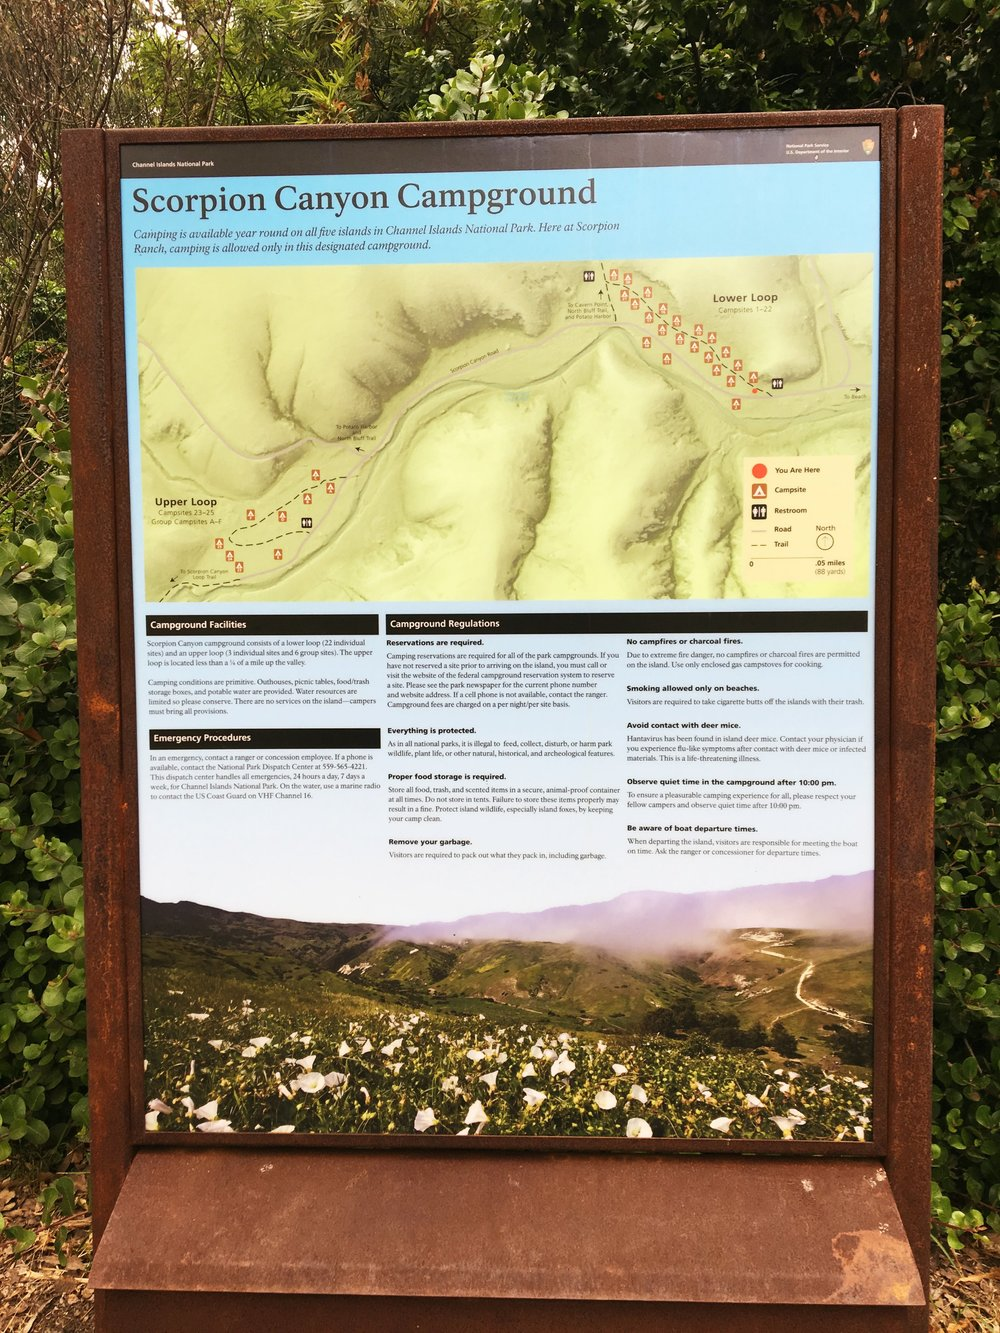 Channel Islands scorpion canyon campground sign.jpg